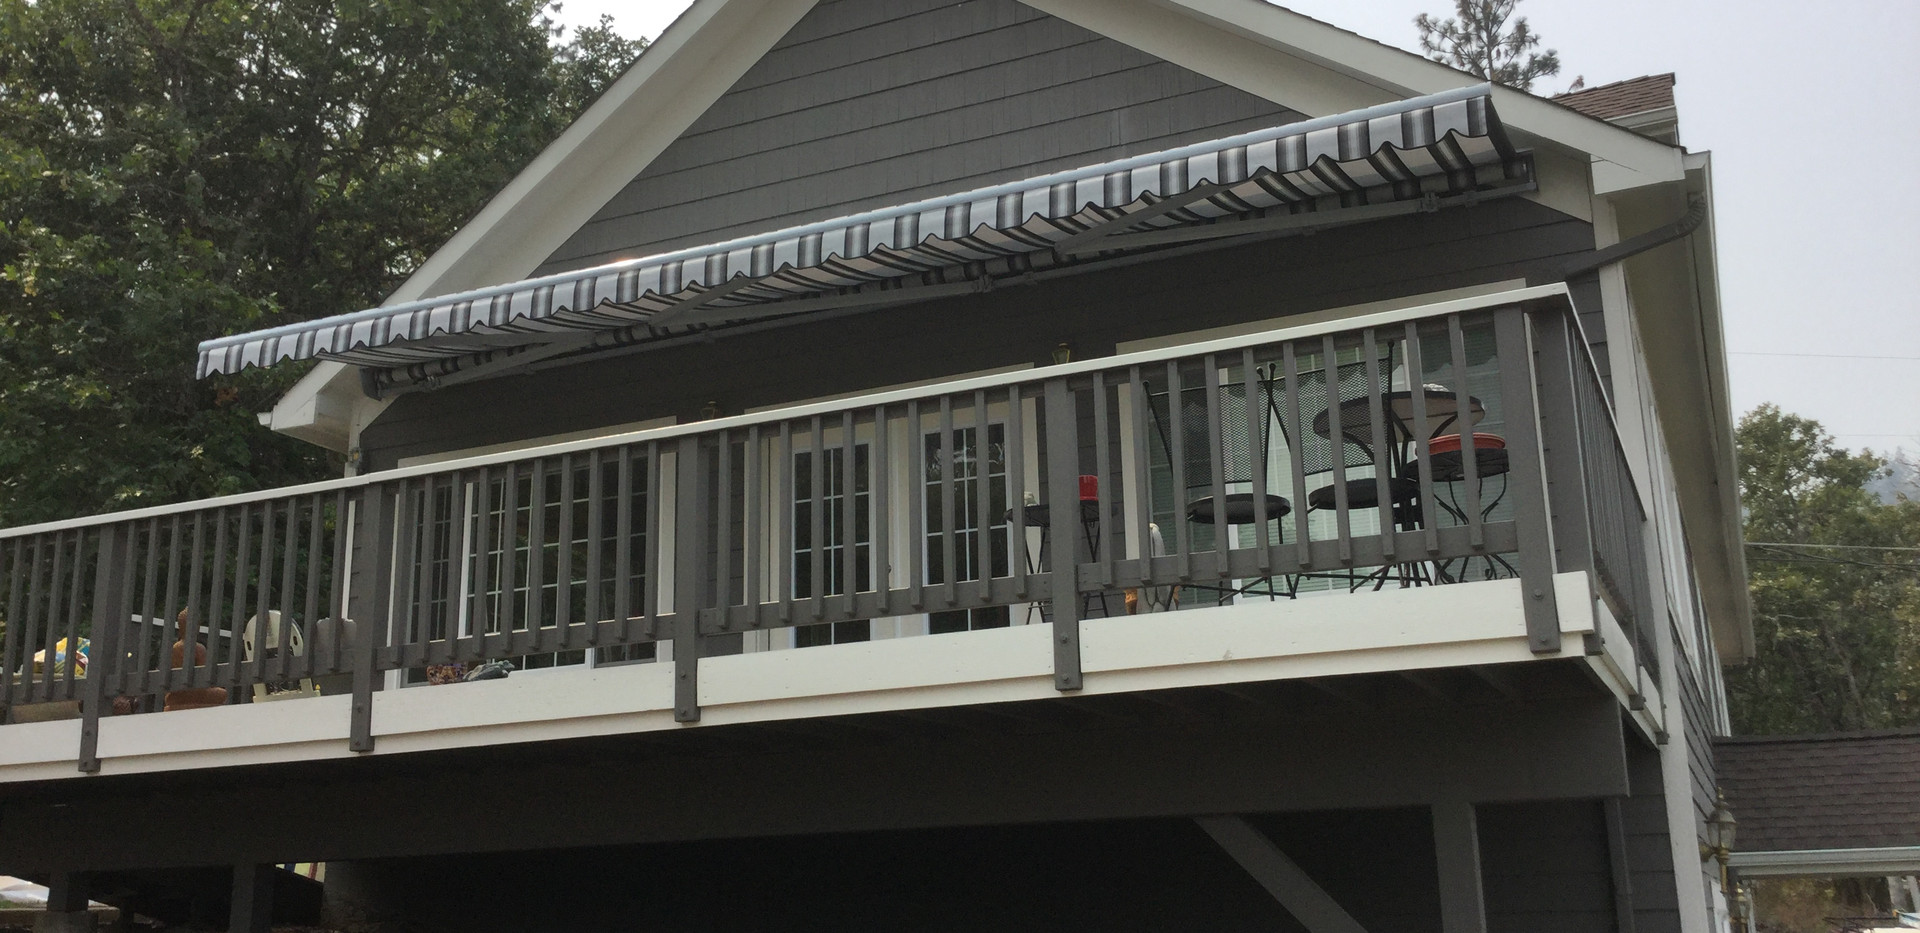 14'x26' retractable awning